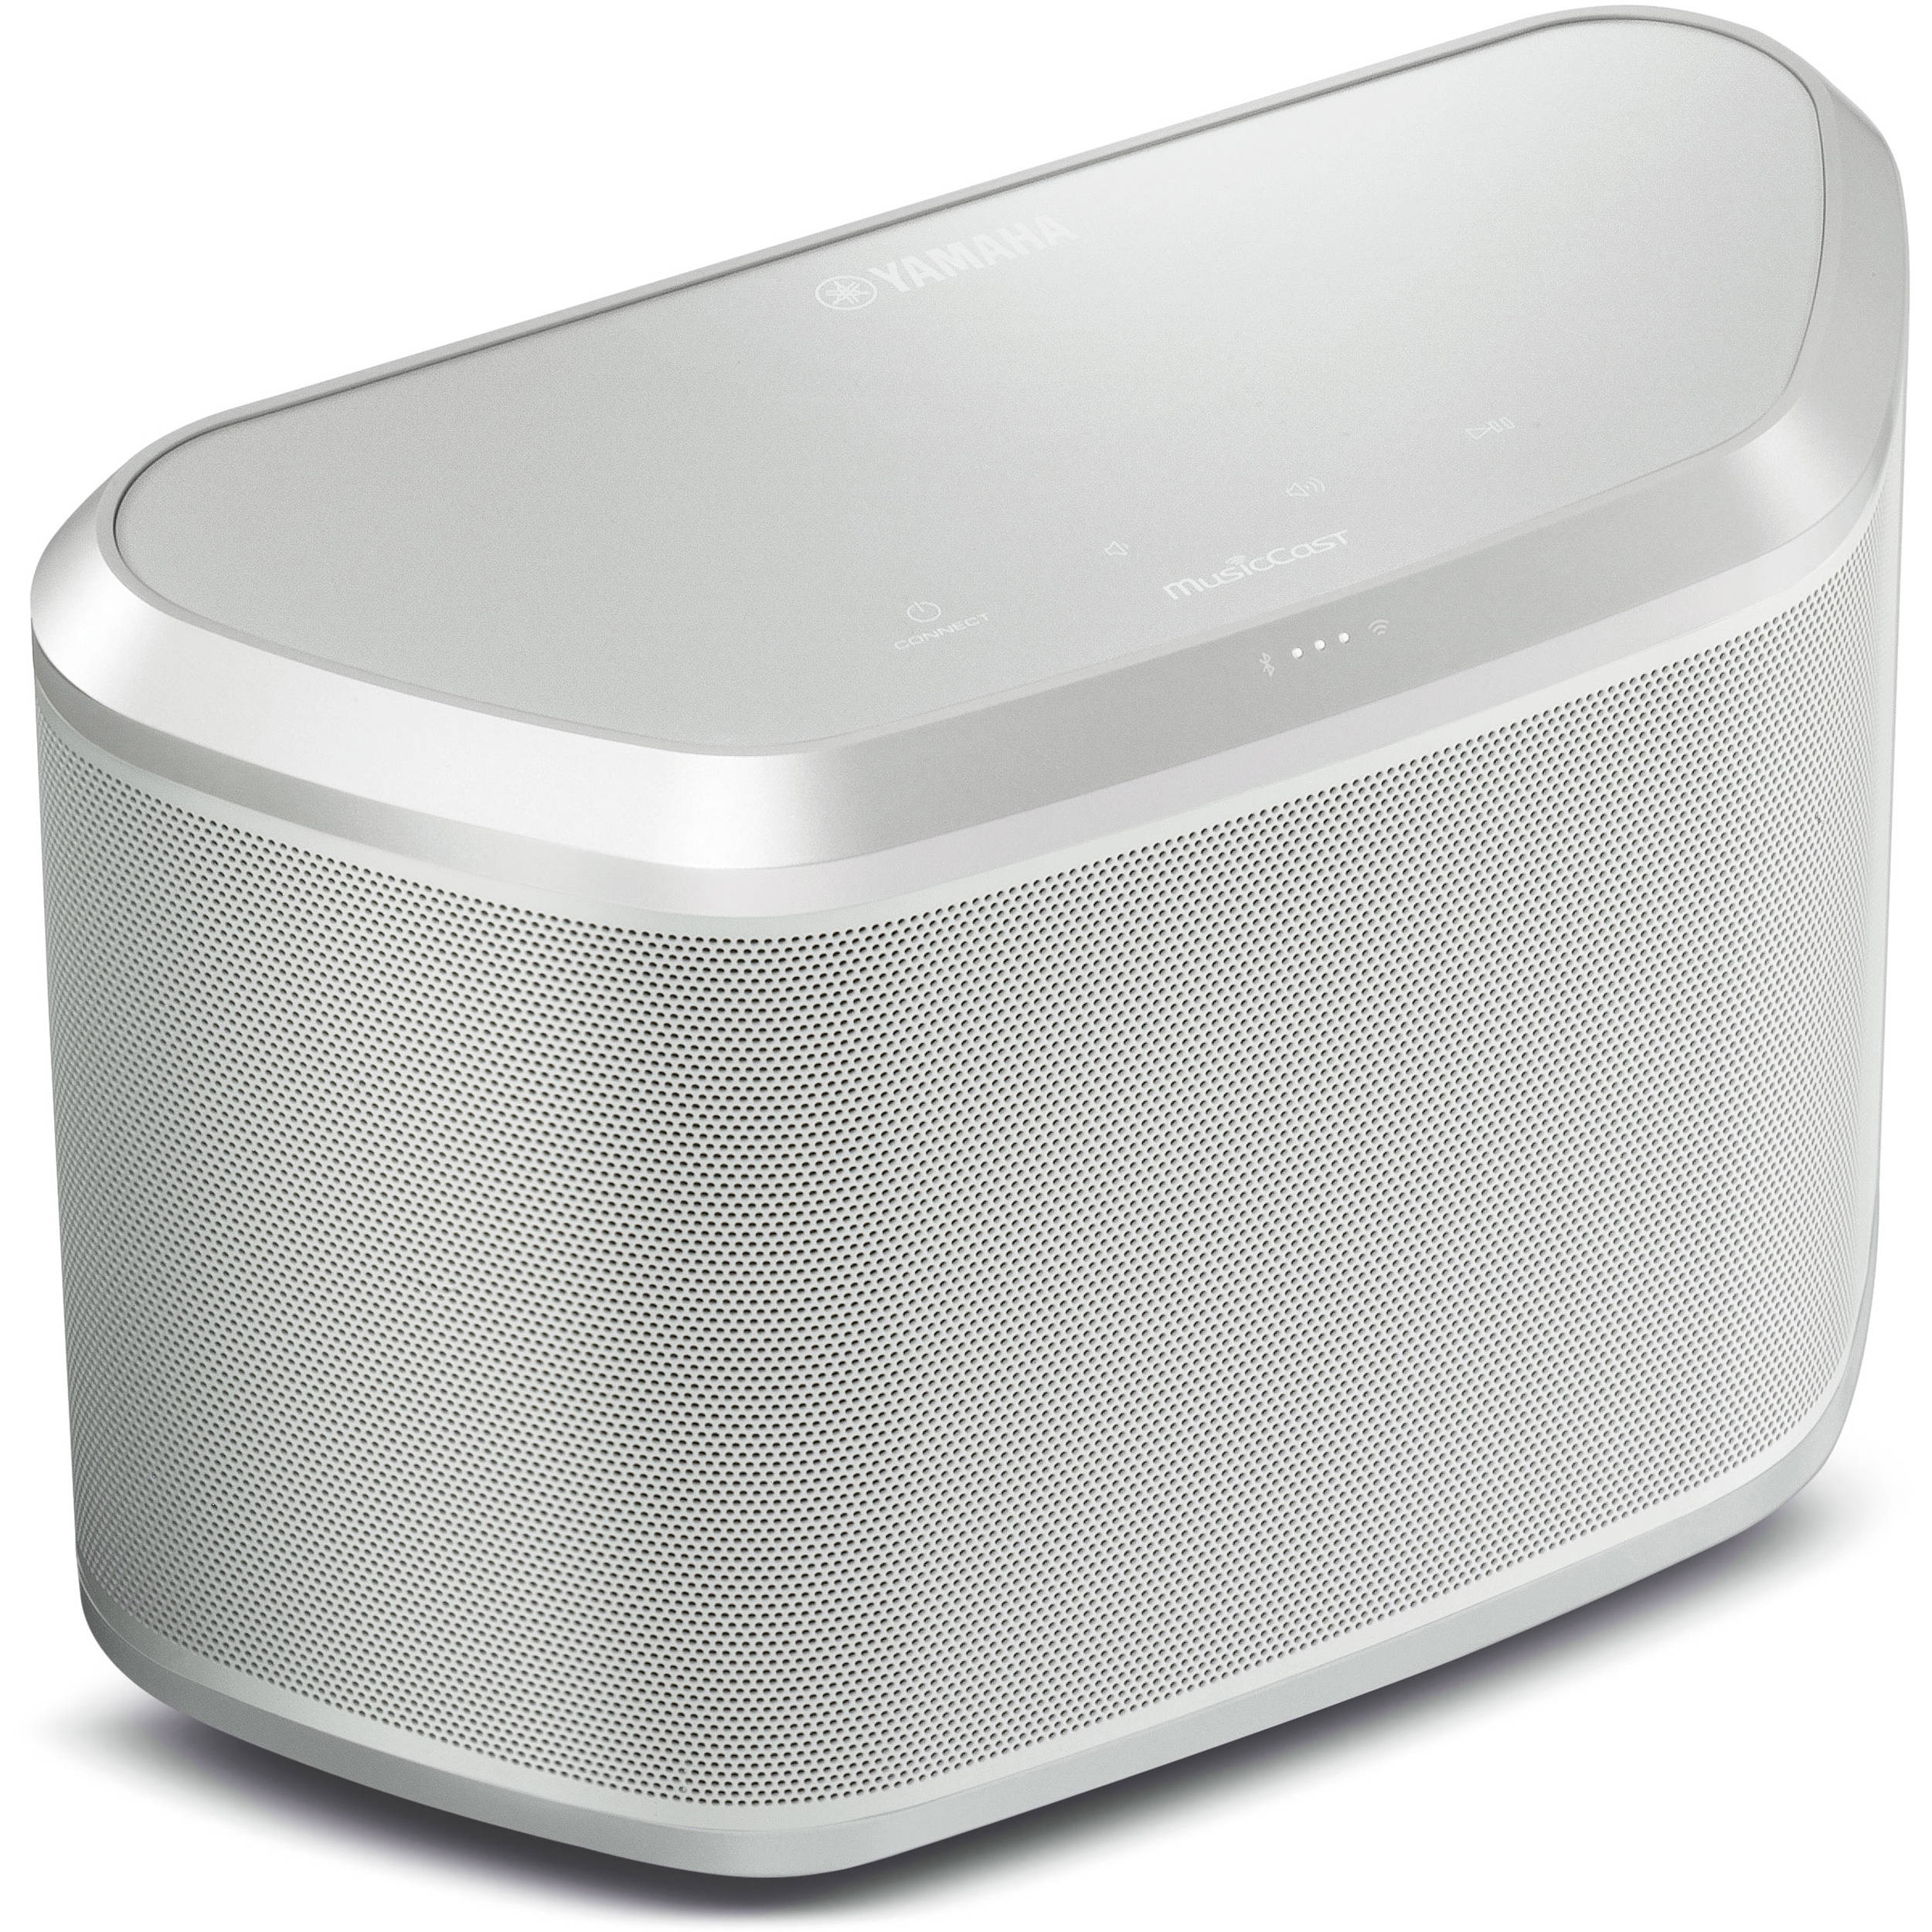 yamaha wx 030 musiccast wireless speaker white silver wx